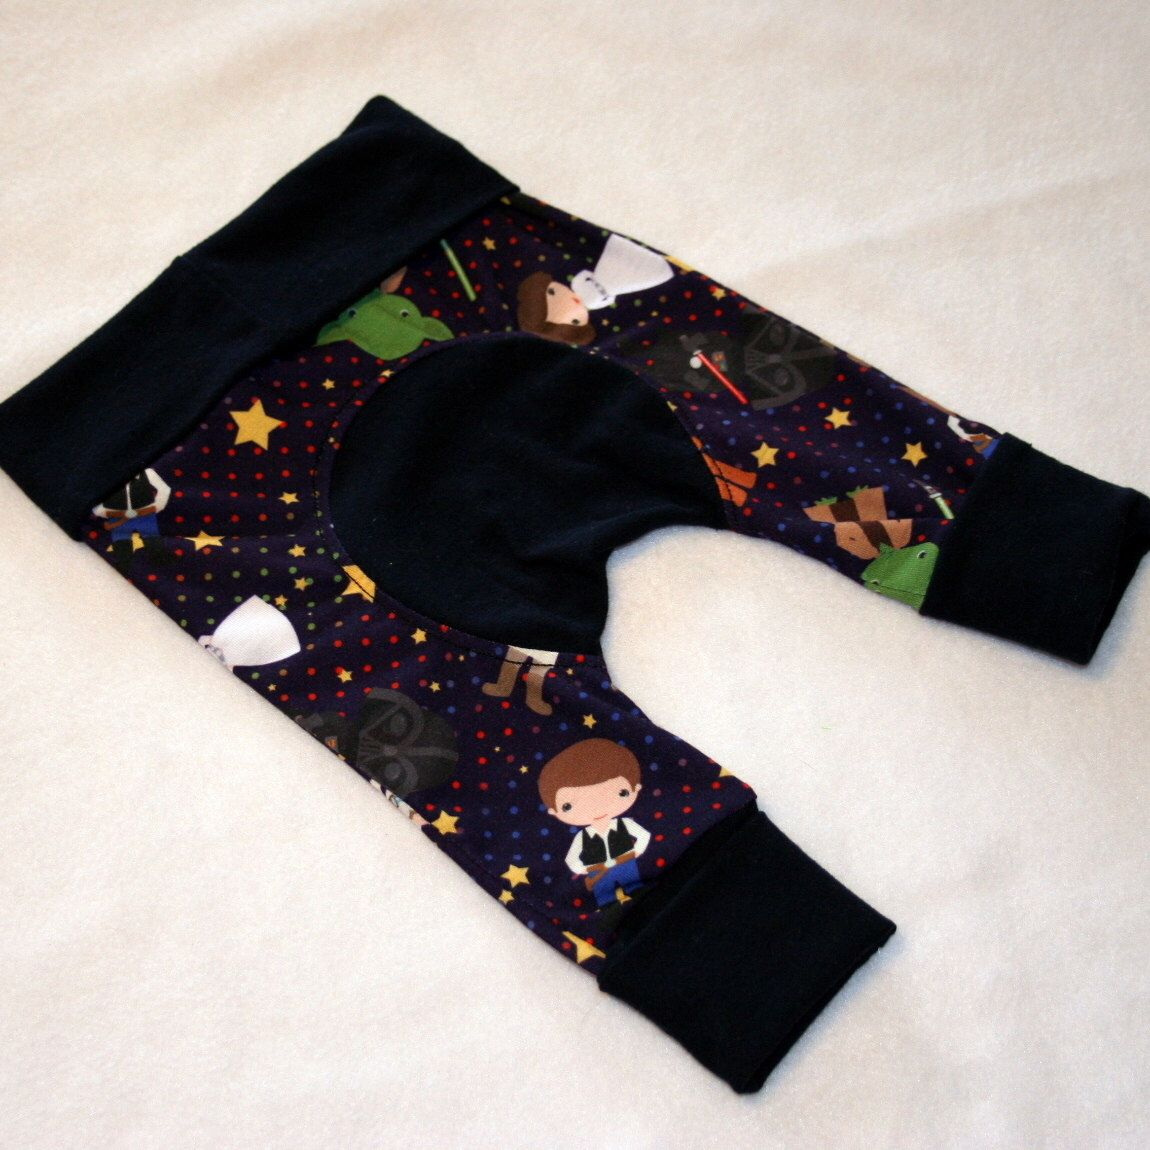 Newborn - Birth to 6 months - Circle Bum Pants - Far Away Galaxy by HippyChicDiapers on Etsy https://www.etsy.com/listing/235233930/newborn-birth-to-6-months-circle-bum